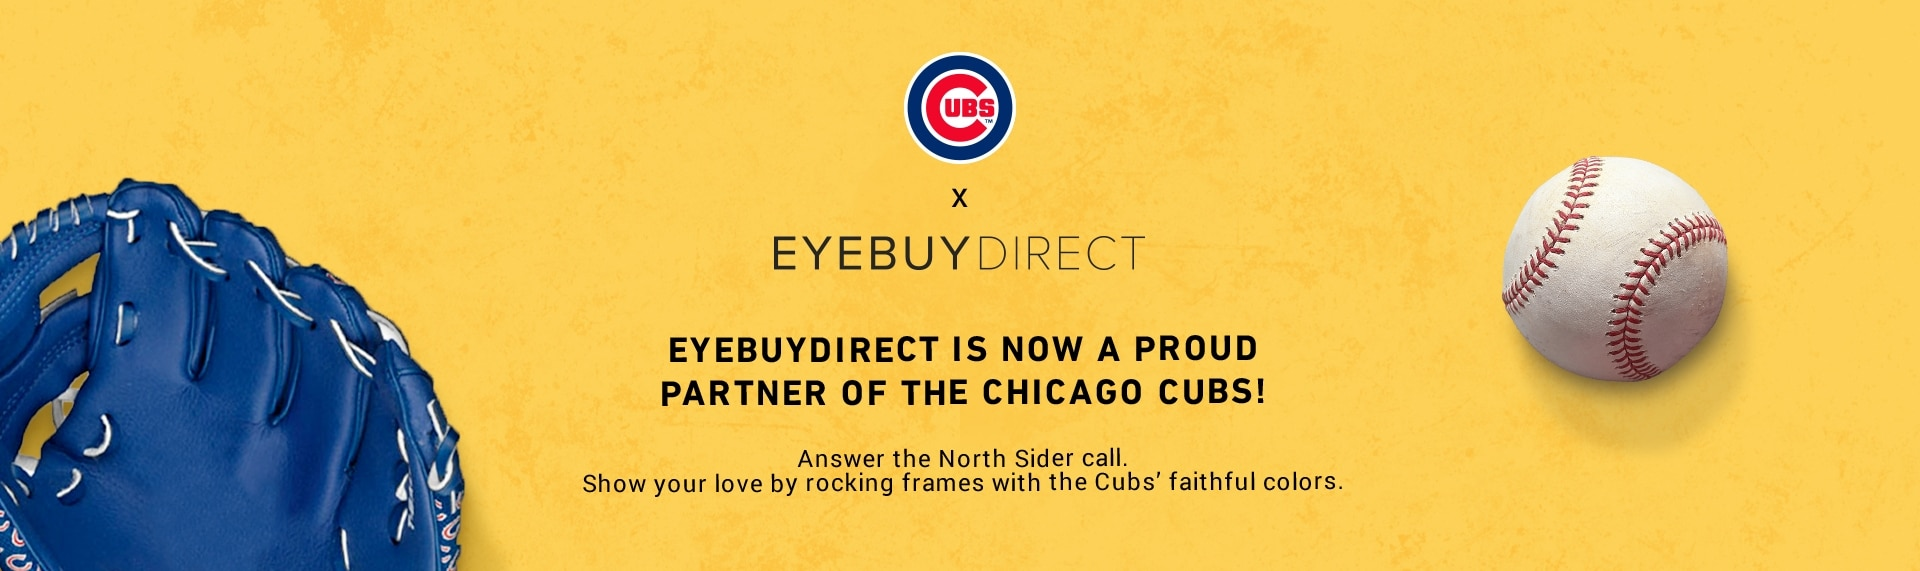 Chicago Cubs x EyeBuyDirect